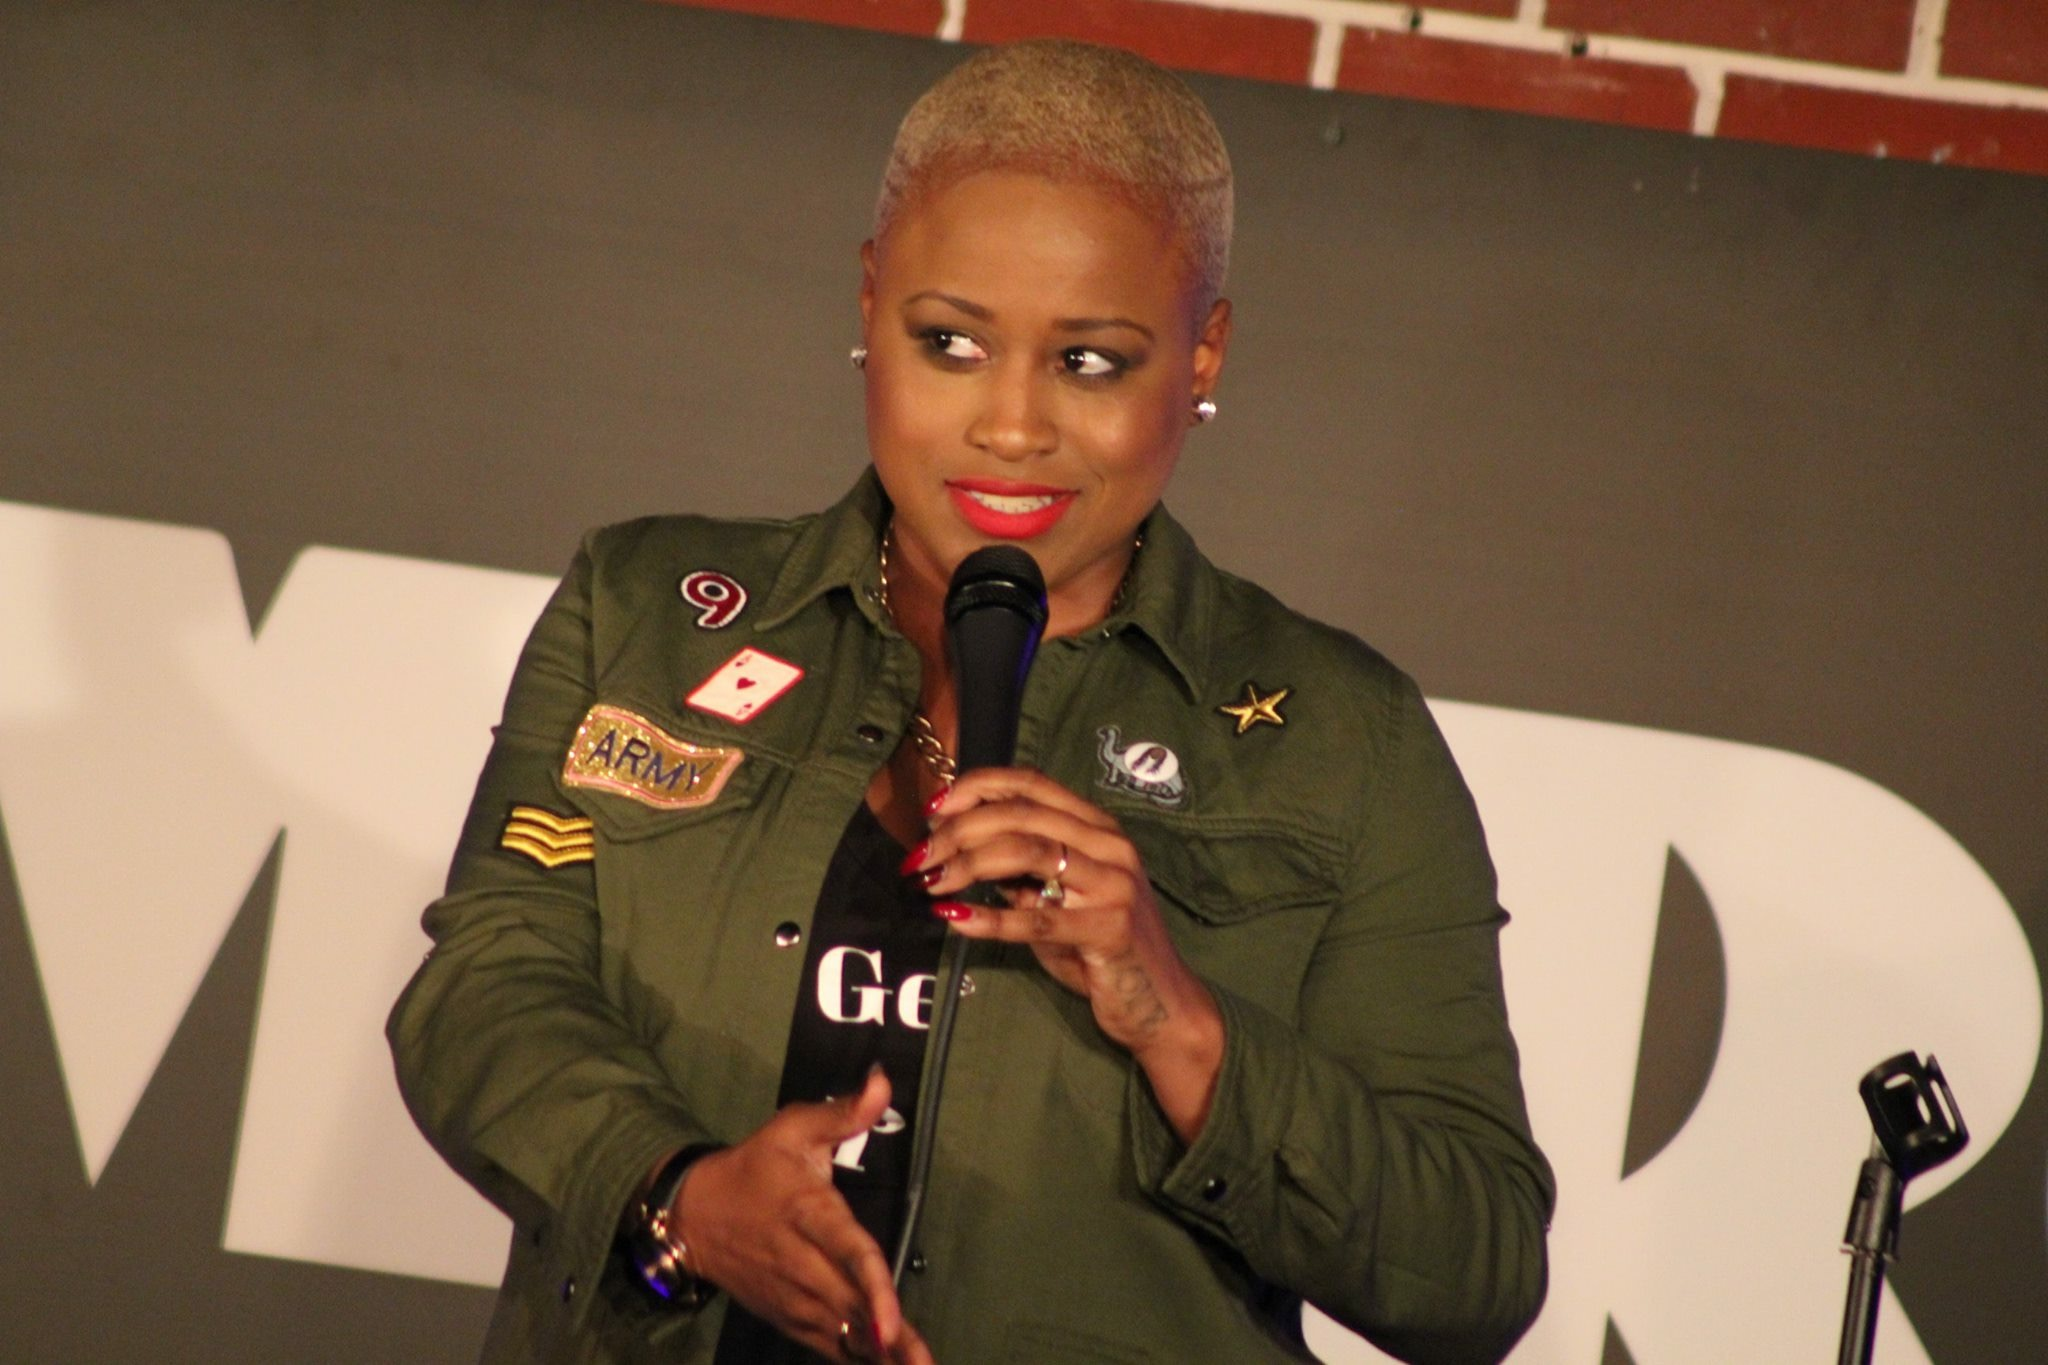 """Paris Sashay is comedienne, actor, and producer from Washington, DC. Her command as a seasoned storyteller makes even the mundane experience feel like an adventure. Audiences across the country fall in love with her infectious laugh, wit, and style.  Nothing can stop Paris' ascension to stardom, unequivocally one of the funniest rising comediennes with highlight performances at the Howard Theatre (DC), The Kennedy Center(DC), Comedy Store (LA) and Caroline's on Broadway (NY). She triumphantly debuted at the DC Improv only days after losing several teeth in a brutal attack by a toxic man sexually harassing her on the street. In 2016, Paris launched the #TeethAndTittiesCampaign raising awareness about violence against women.  Paris has featured for Dick Gregory, Domonique, Sampson McCormick, and Michael Che offering her piercing insight on issues of the day. She has been a panel member on """"Wild'n Out Wednesday's with Roland Martin"""" on TV One, and interviewed on Fox 5 DC, NBC 4 Washington, and WUSA 9 regarding her assault. Additionally, Paris frequently serves as a motivational speaker, having the honor of being the 2013 Commencement Speaker at The Foundation School in Gaithersburg, MD."""